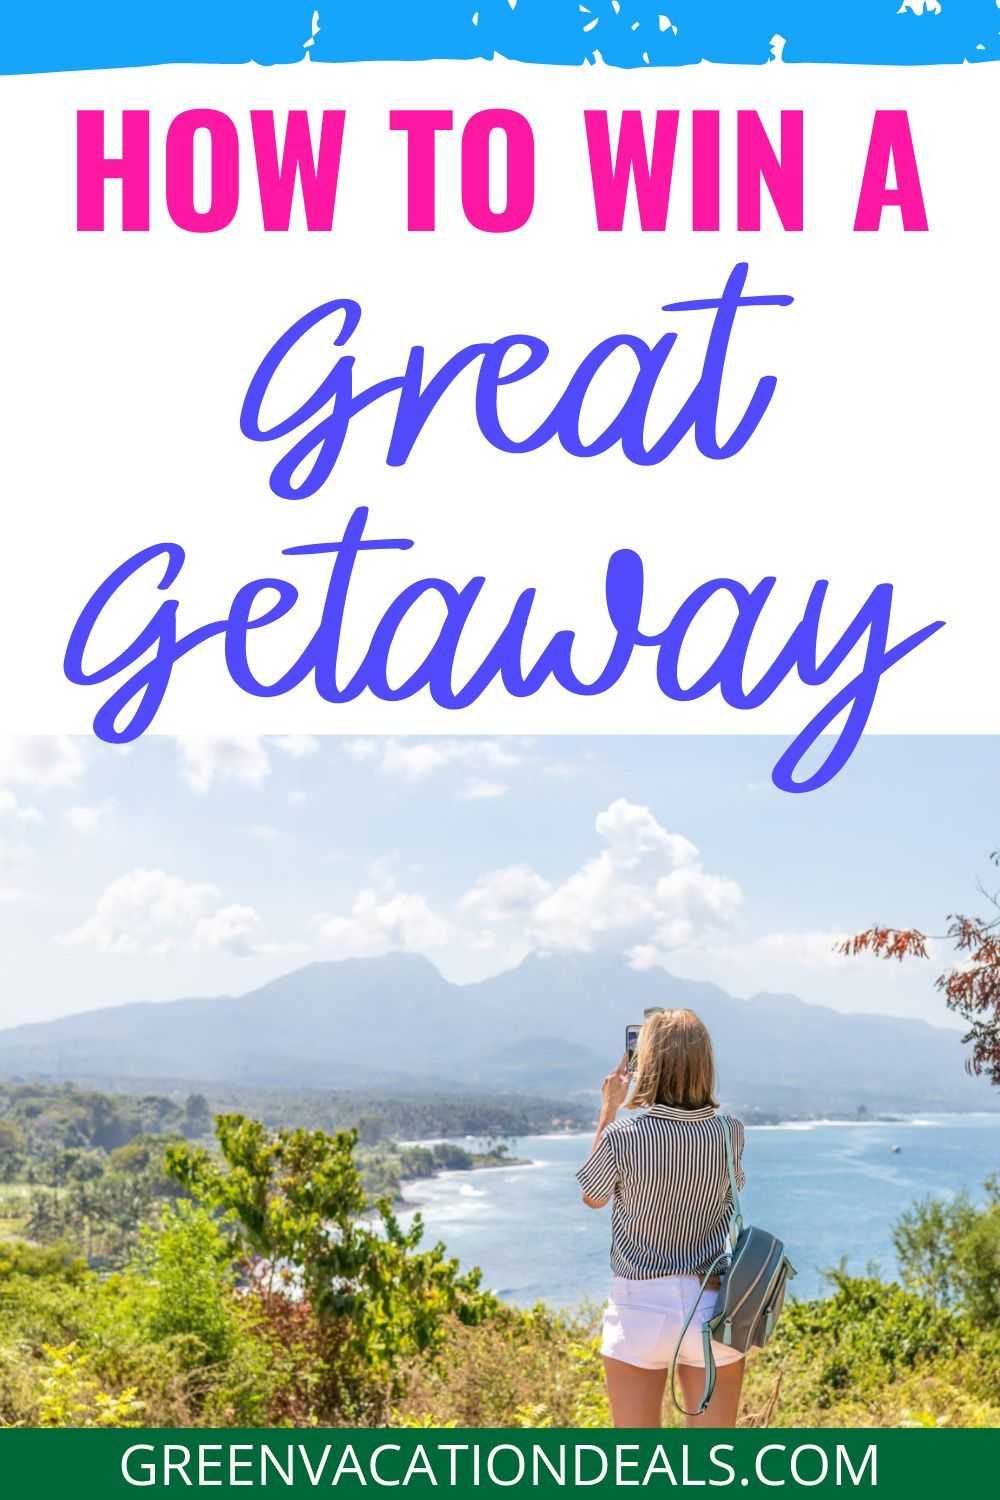 Enter Focus Features: Let Him Go Getaway Sweepstakes to win one of 4 Grand Prizes of a $500 Airbnb Gift Card. Have your dream vacation to the location of your choice! Amazing travel giveaway. #freetravel #travelforfree #freetrip #getaway #giveaway #contest #lovetotravel #lovetravel #needavacation #cheaptravel #budgettravel #wanderlust #travelbug #traveladdict #budgettraveler #wander